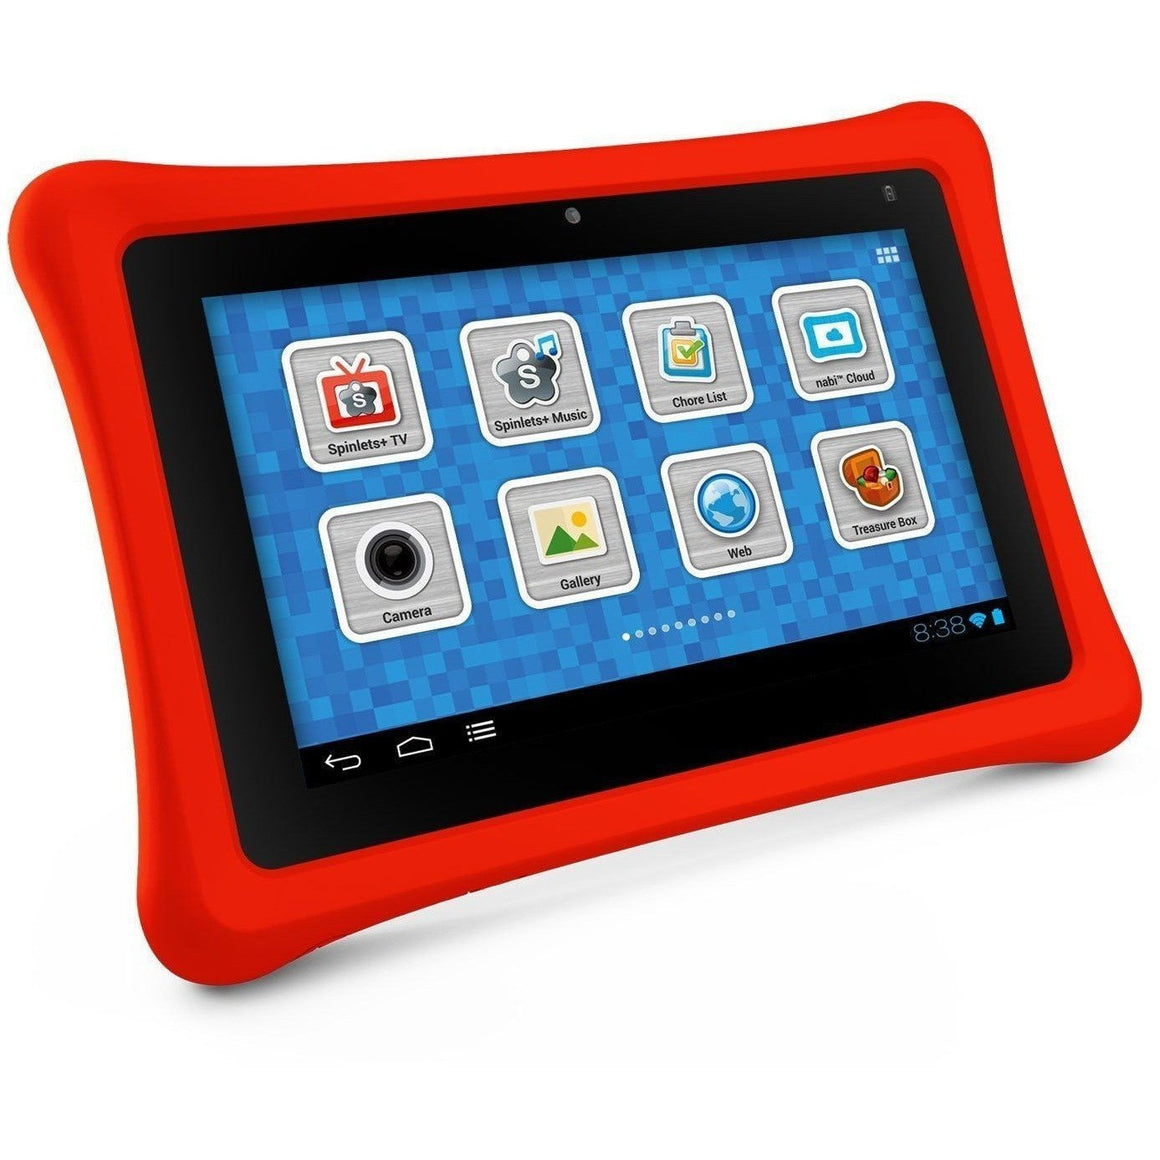 Nabi 2 Tablet - 8 GB